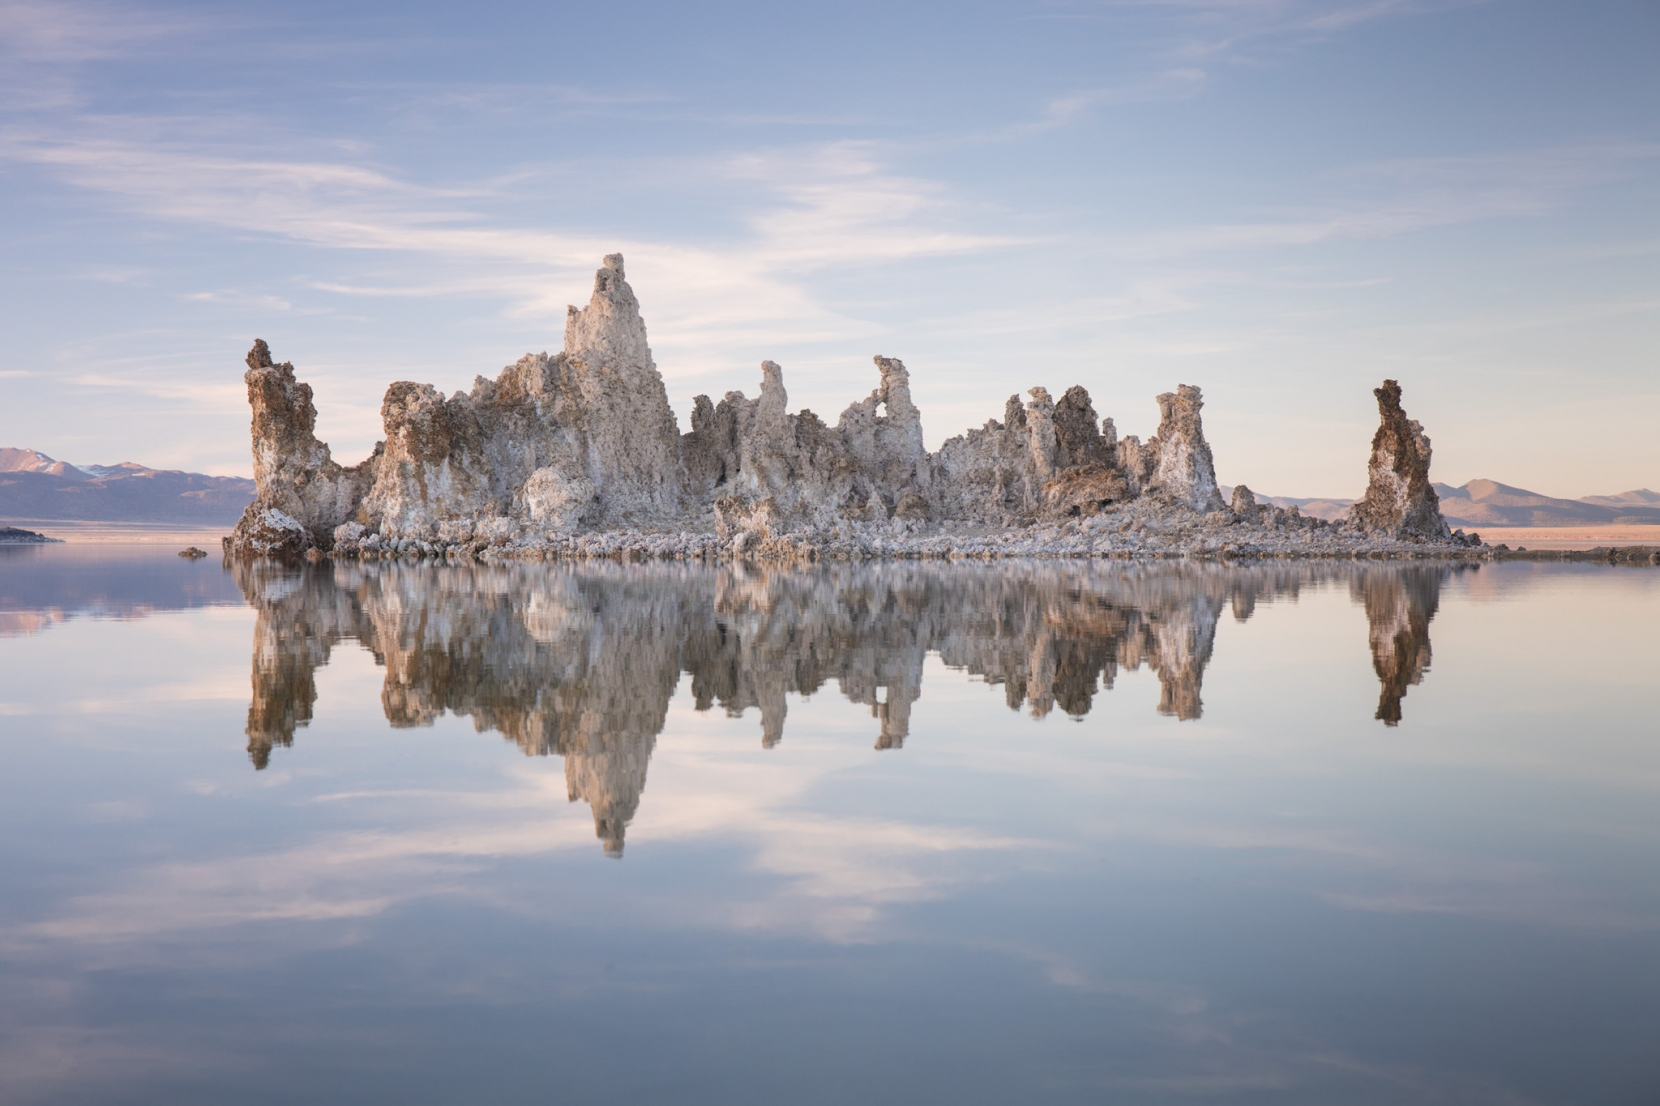 We will visit Mono Lake towards the end of the trip, a superb abstract location.